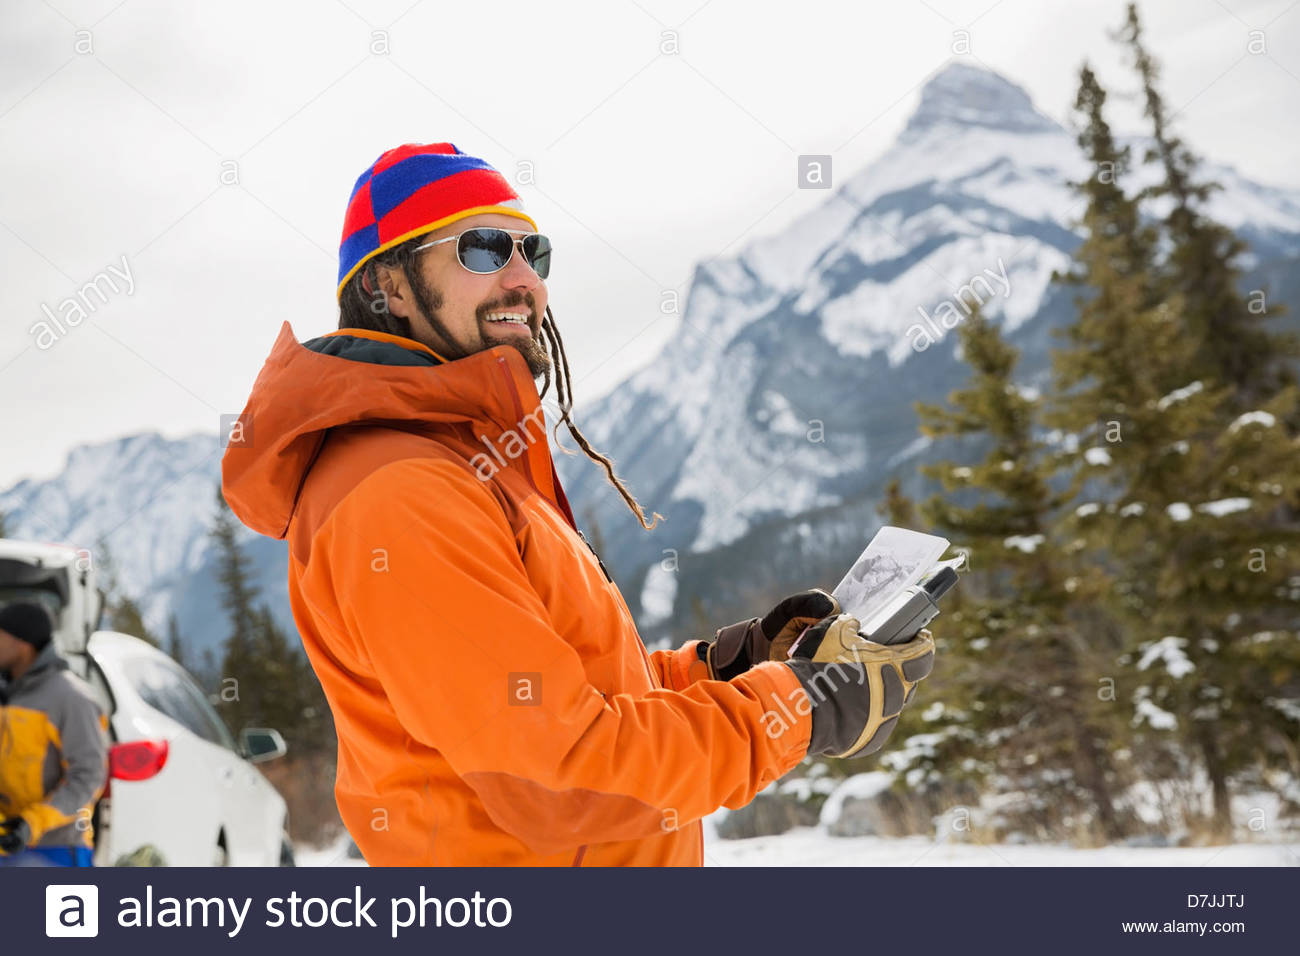 Smiling man with map and GPS in mountains - Stock Image